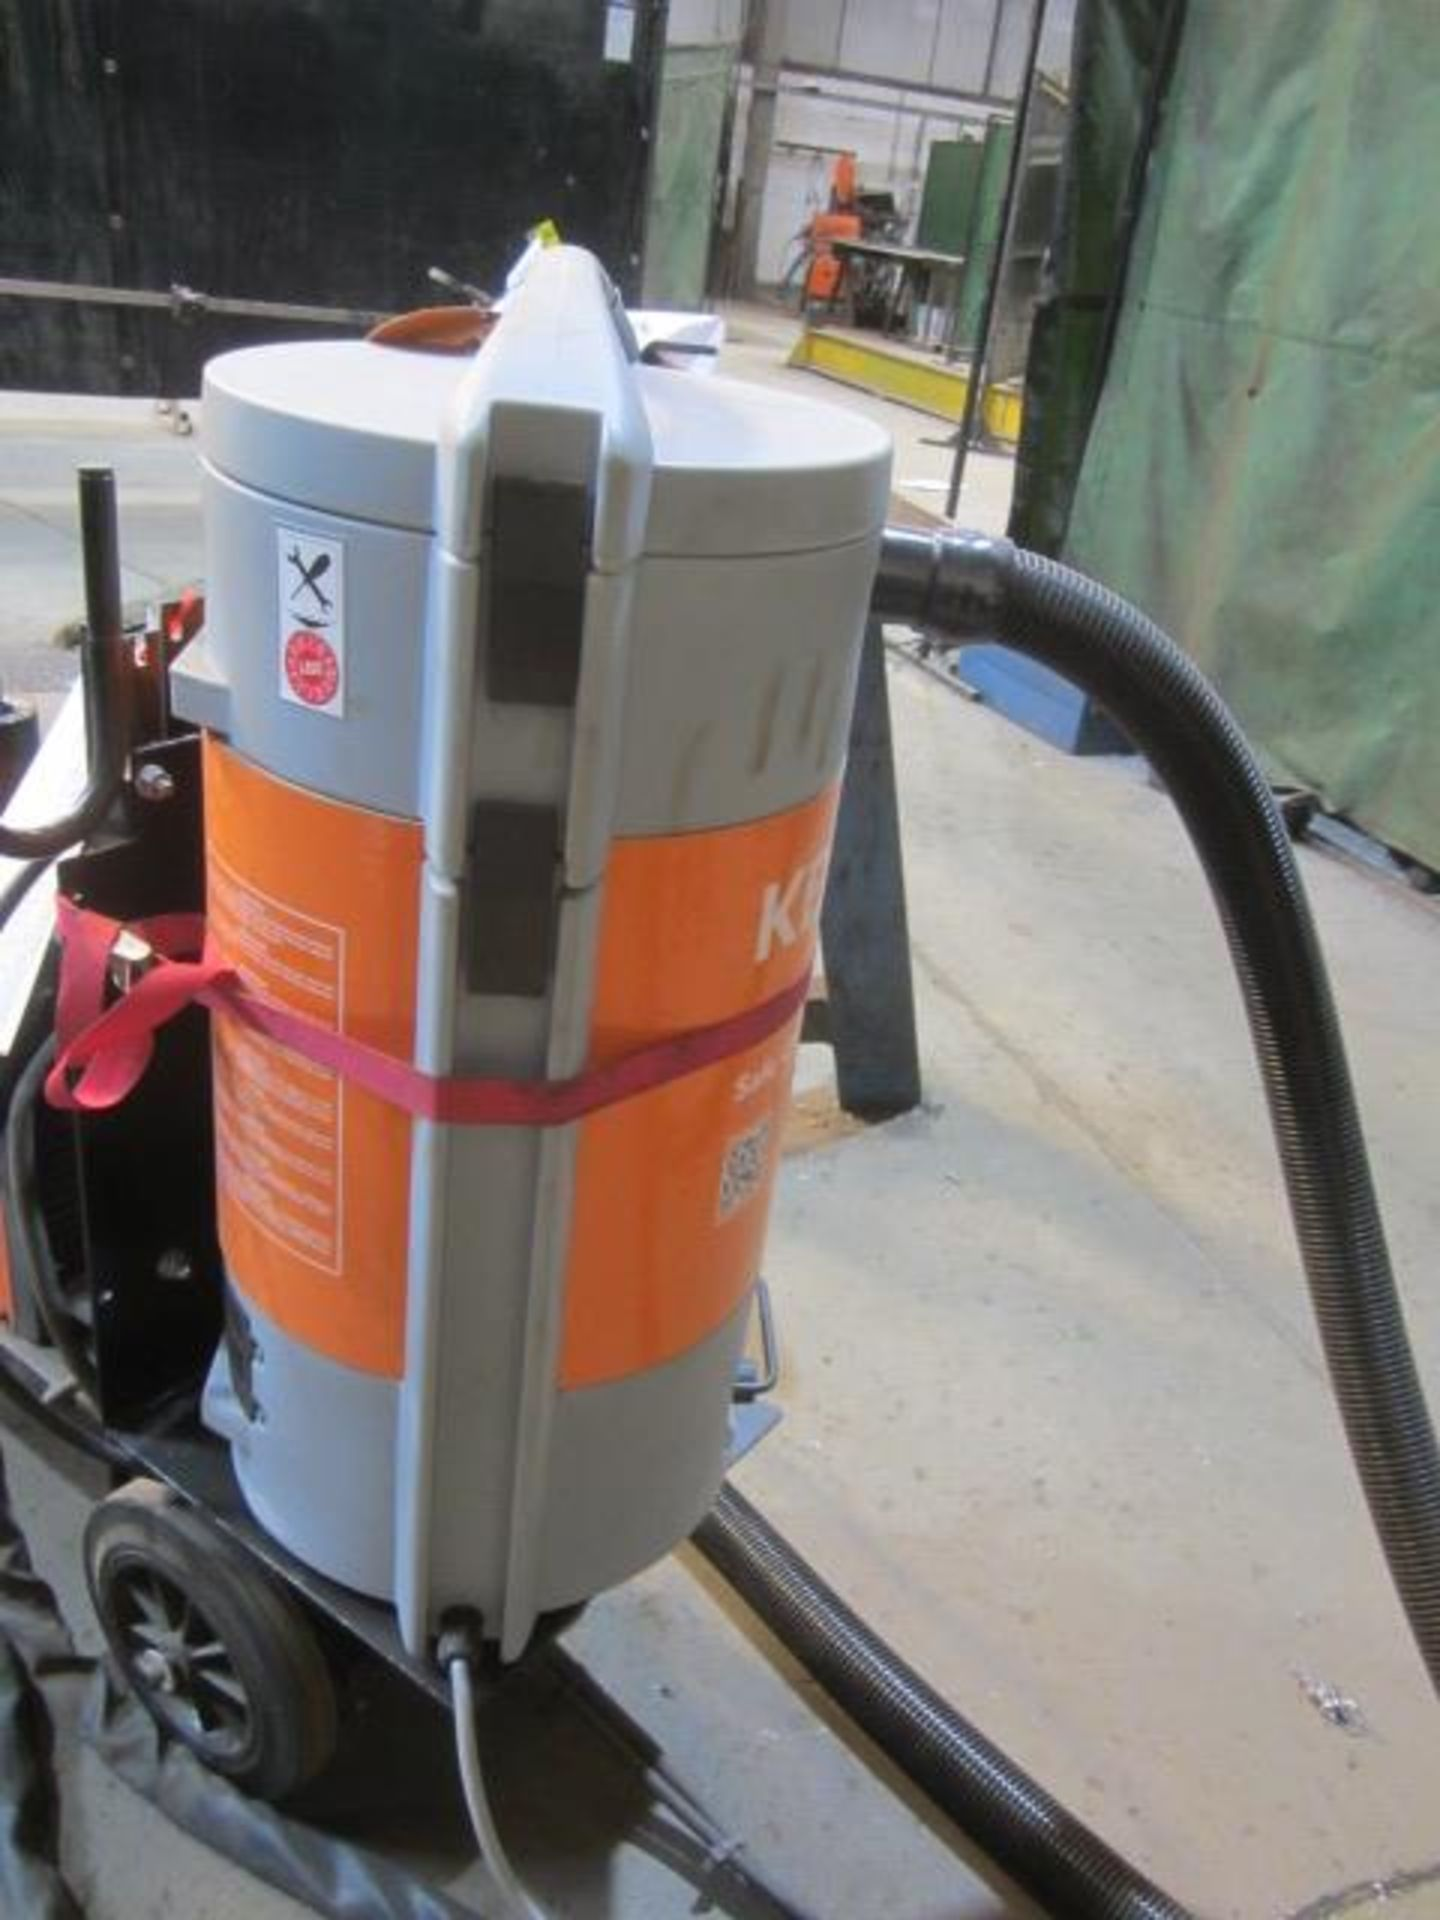 Kemppi Fast Mig M420 mig welder, serial no. 2673739, with Fast Mig MXF65 wire feeder, serial no. - Image 7 of 8